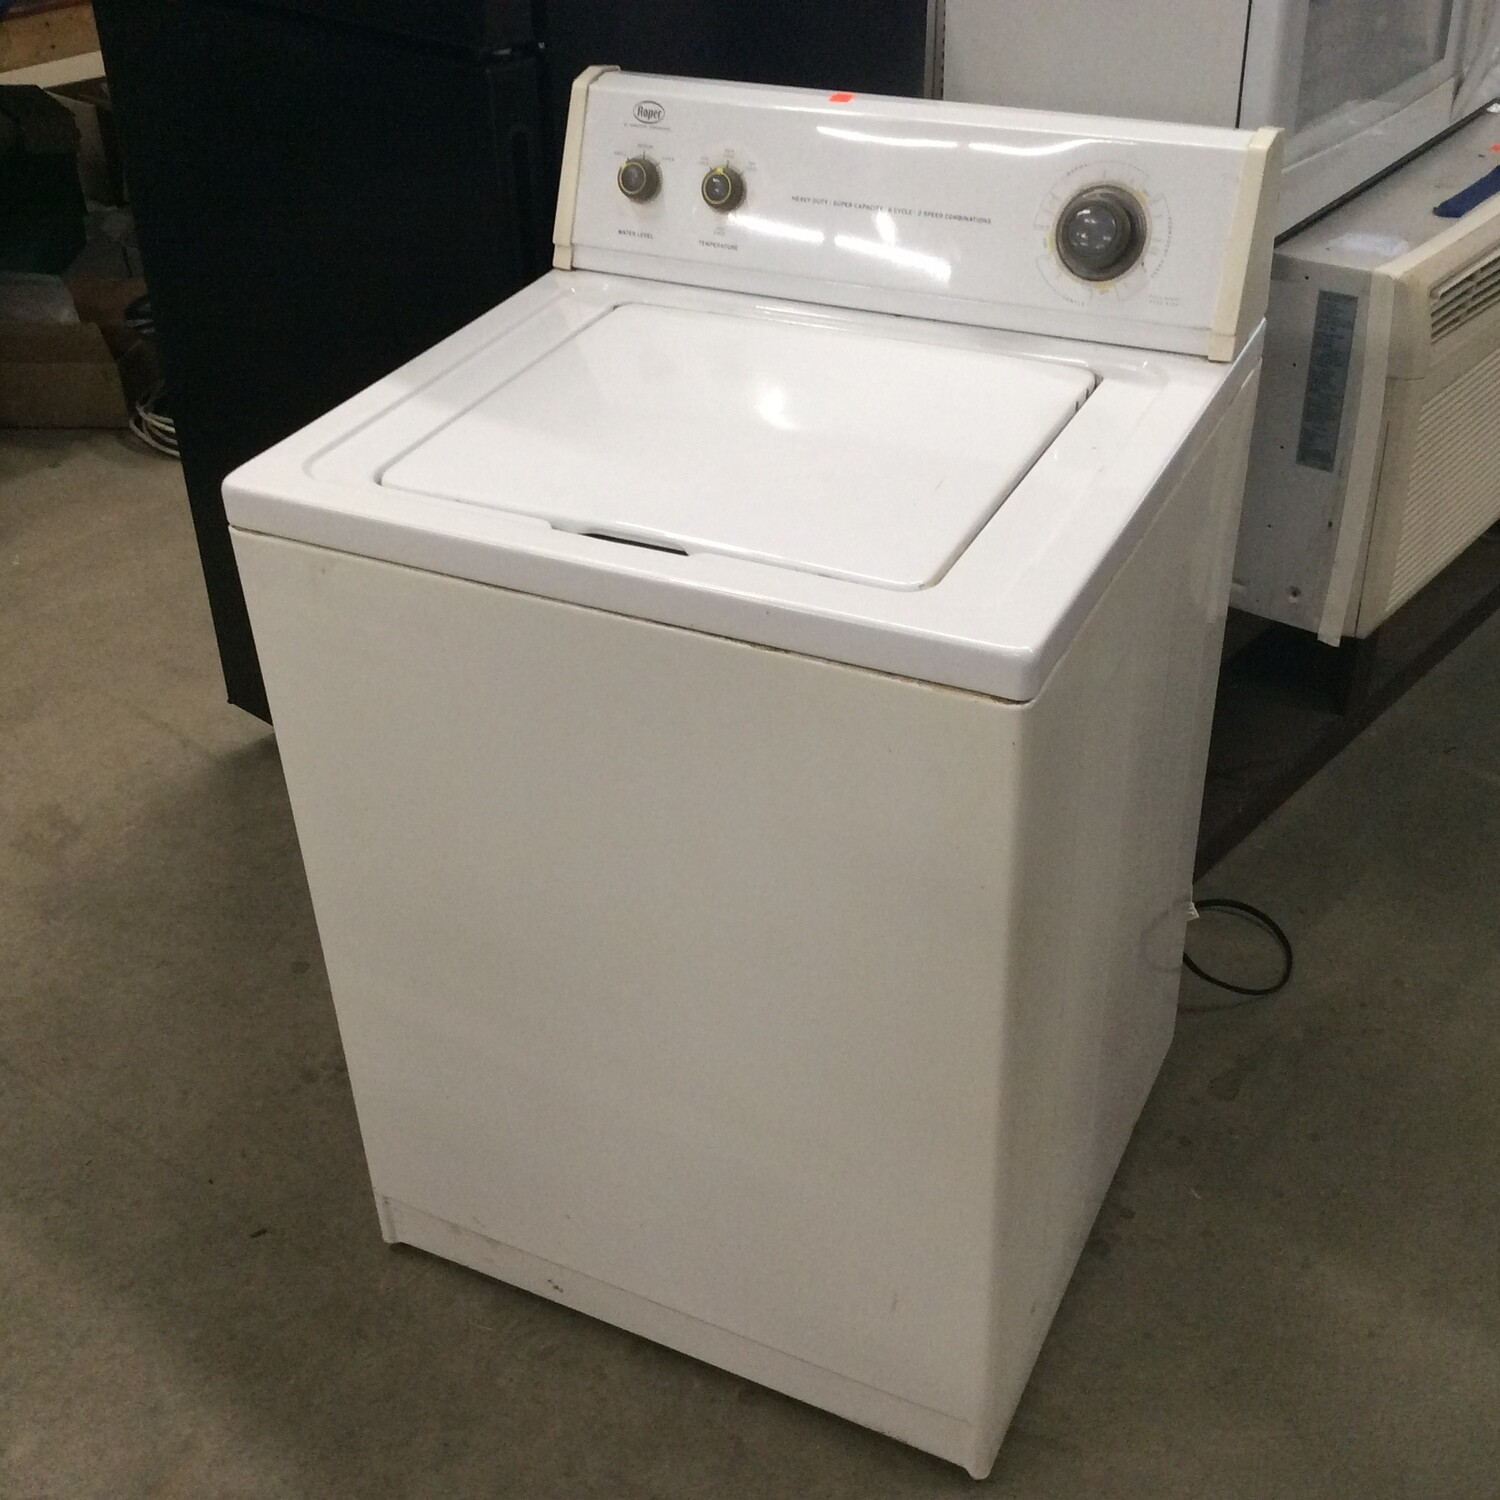 Top-Loading Large Capacity Roper Washing Machine by Whirlpool